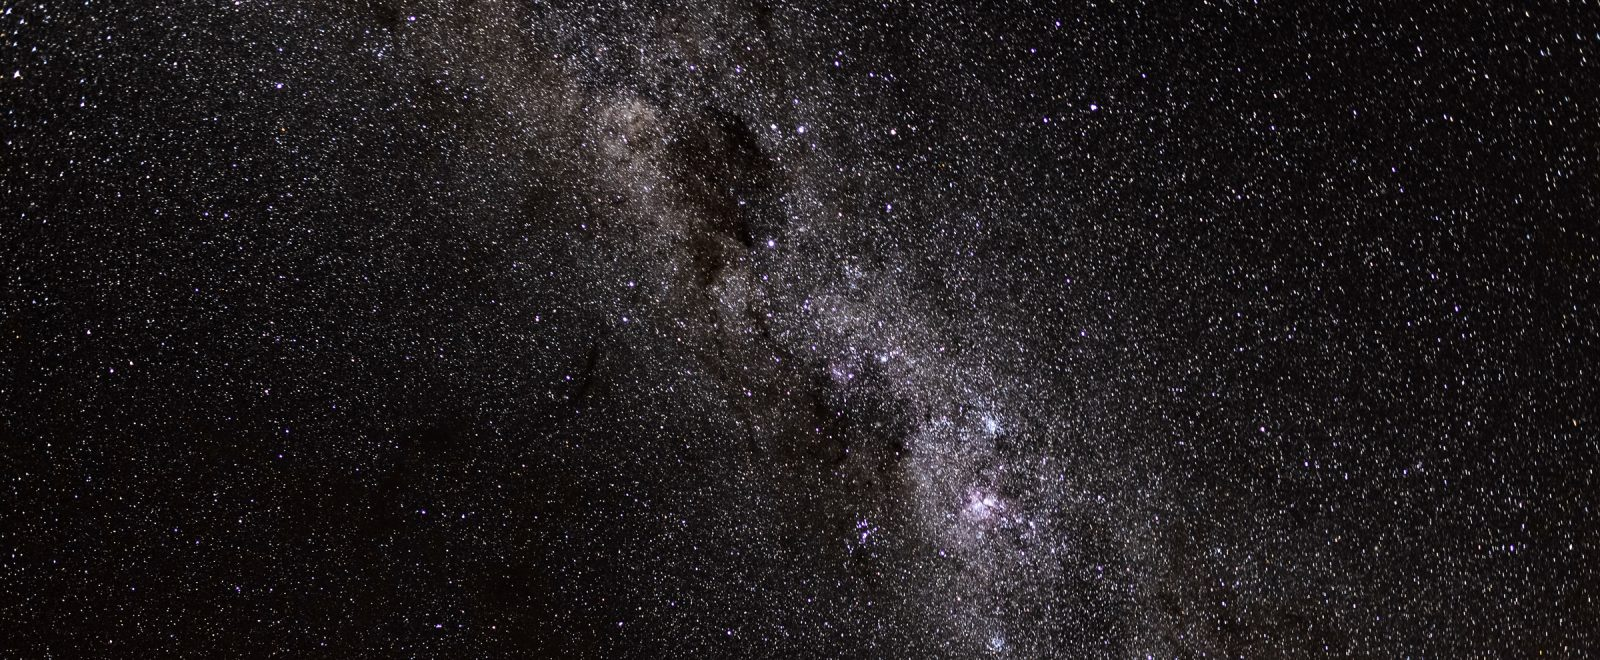 Nighttime sky with Milky Way stars visible